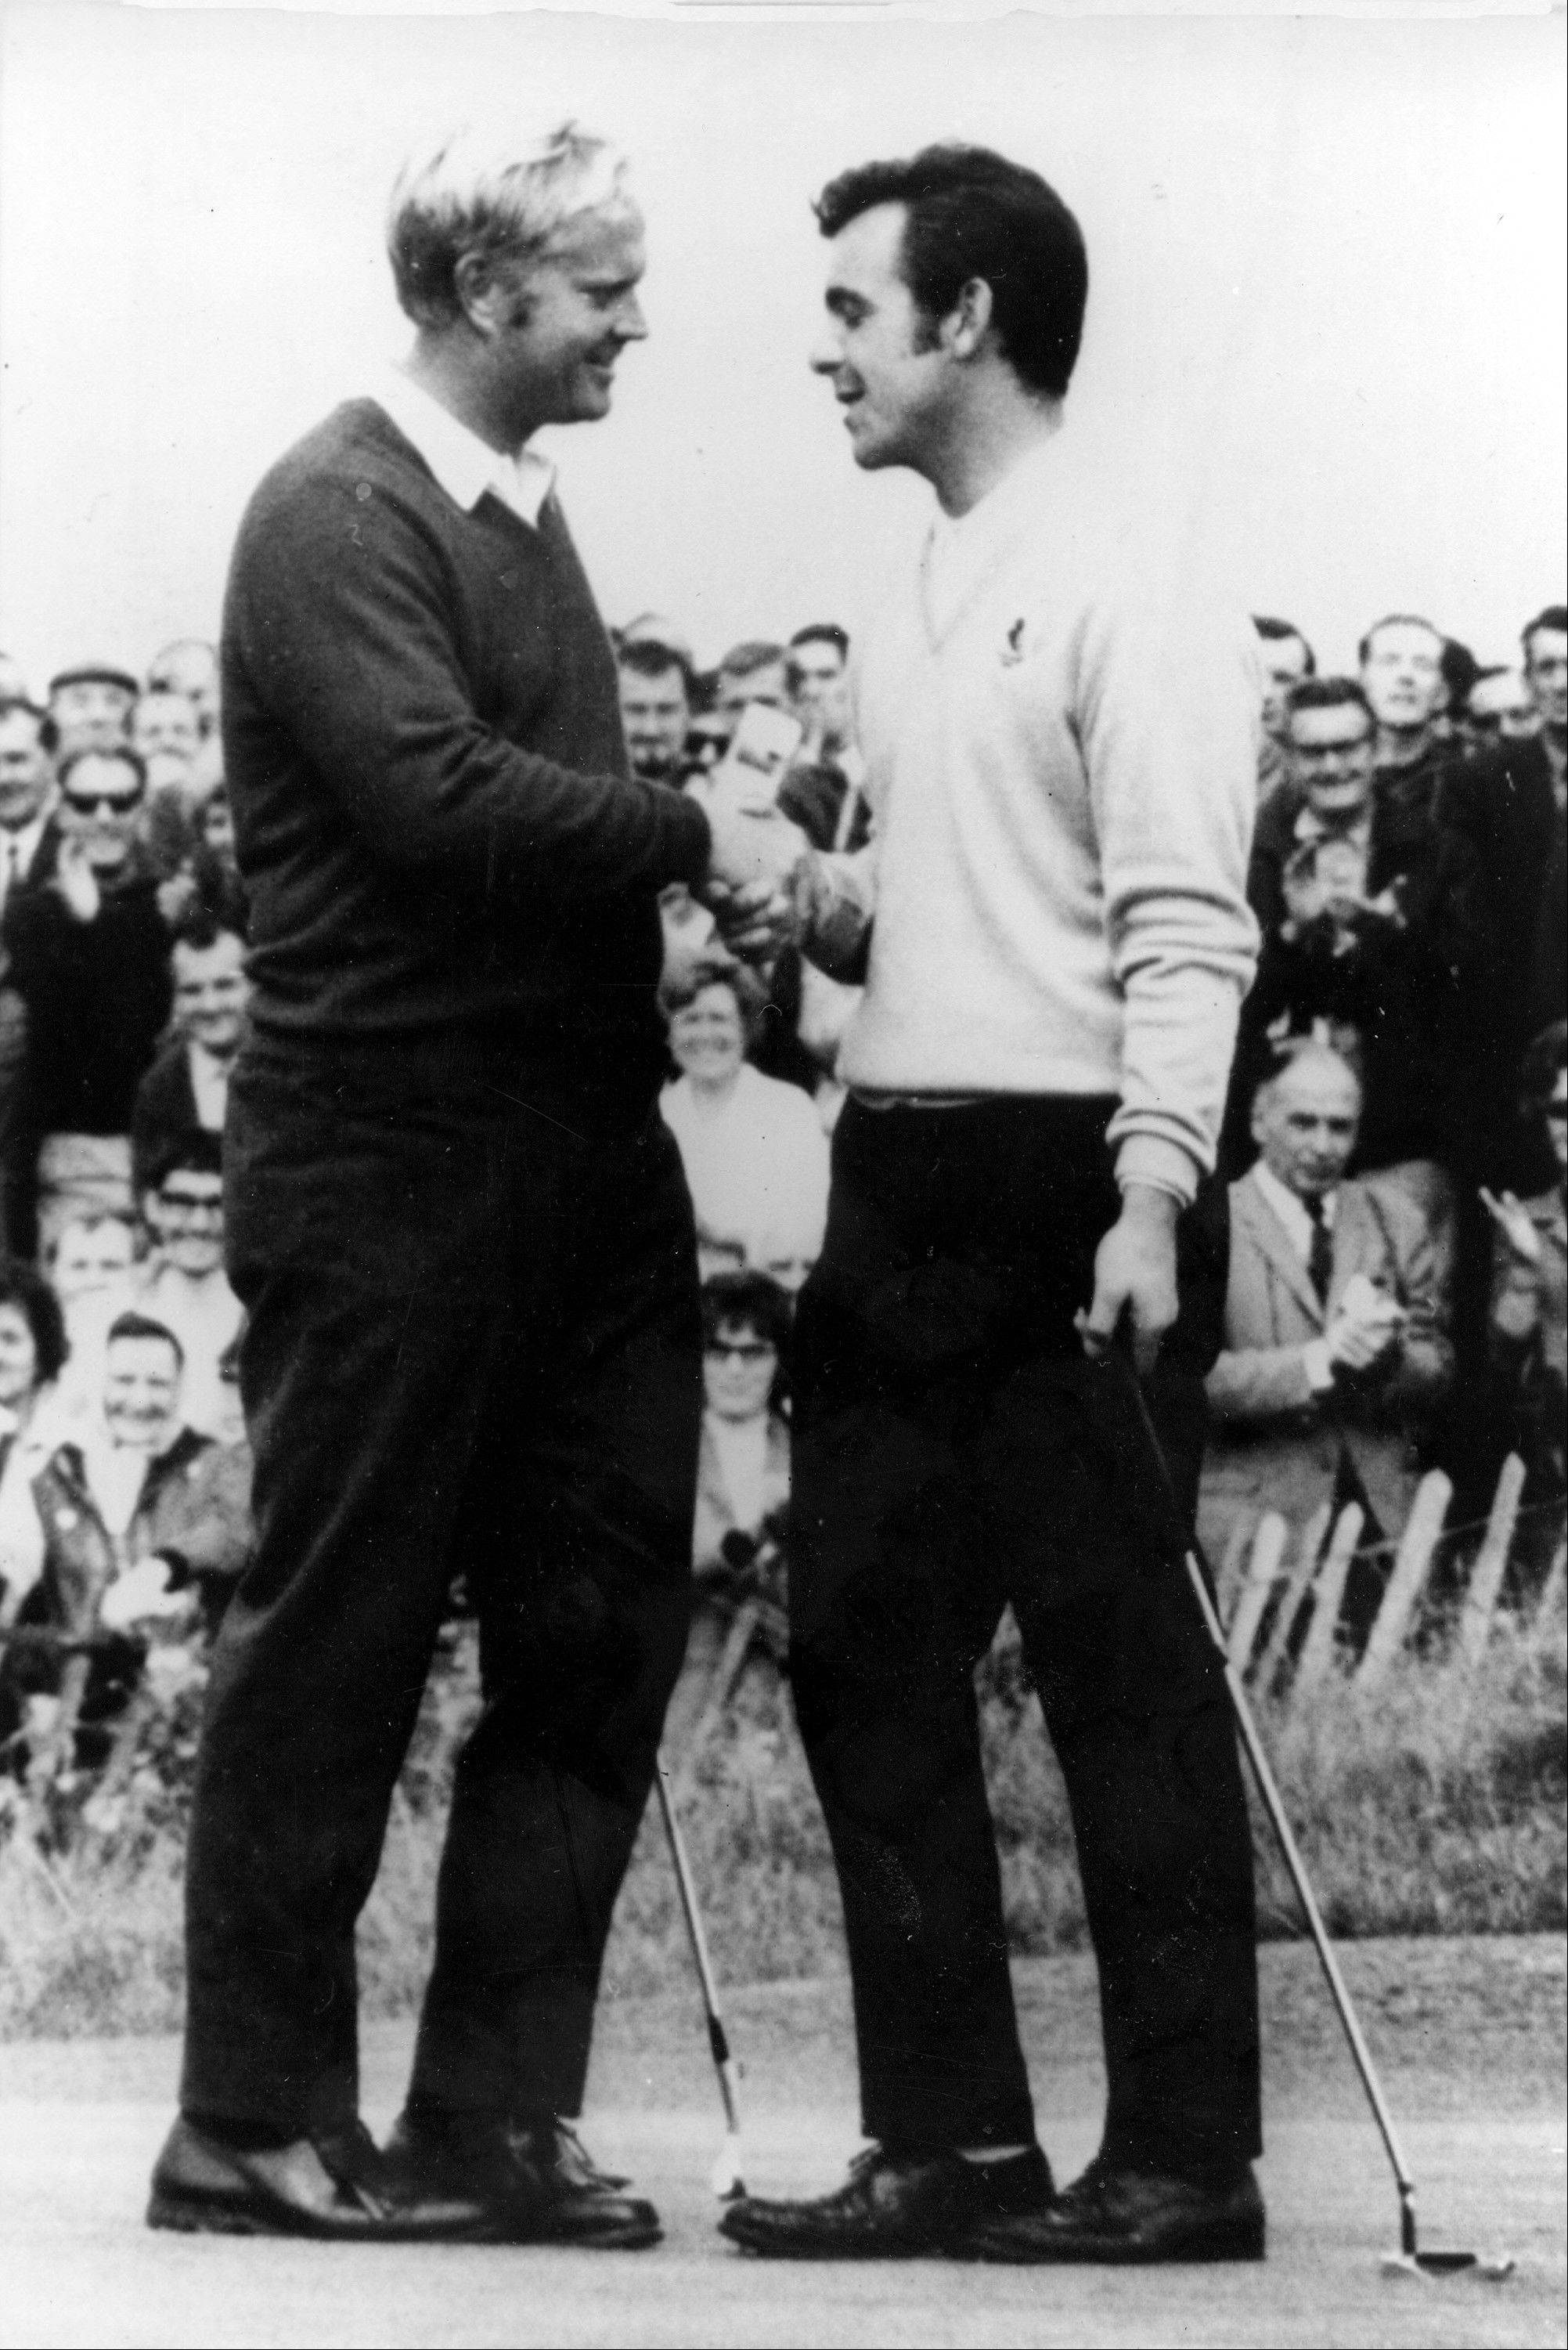 Jack Nicklaus, left, and Tony Jacklin of Great Britain combined for one of the most endearing moments in golf history in the 1969 Ryder Cup when Nicklaus made his putt on the final hole to knot the team score at 16-apiece and then picked up Jacklin's marker as he faced a two-foot putt.